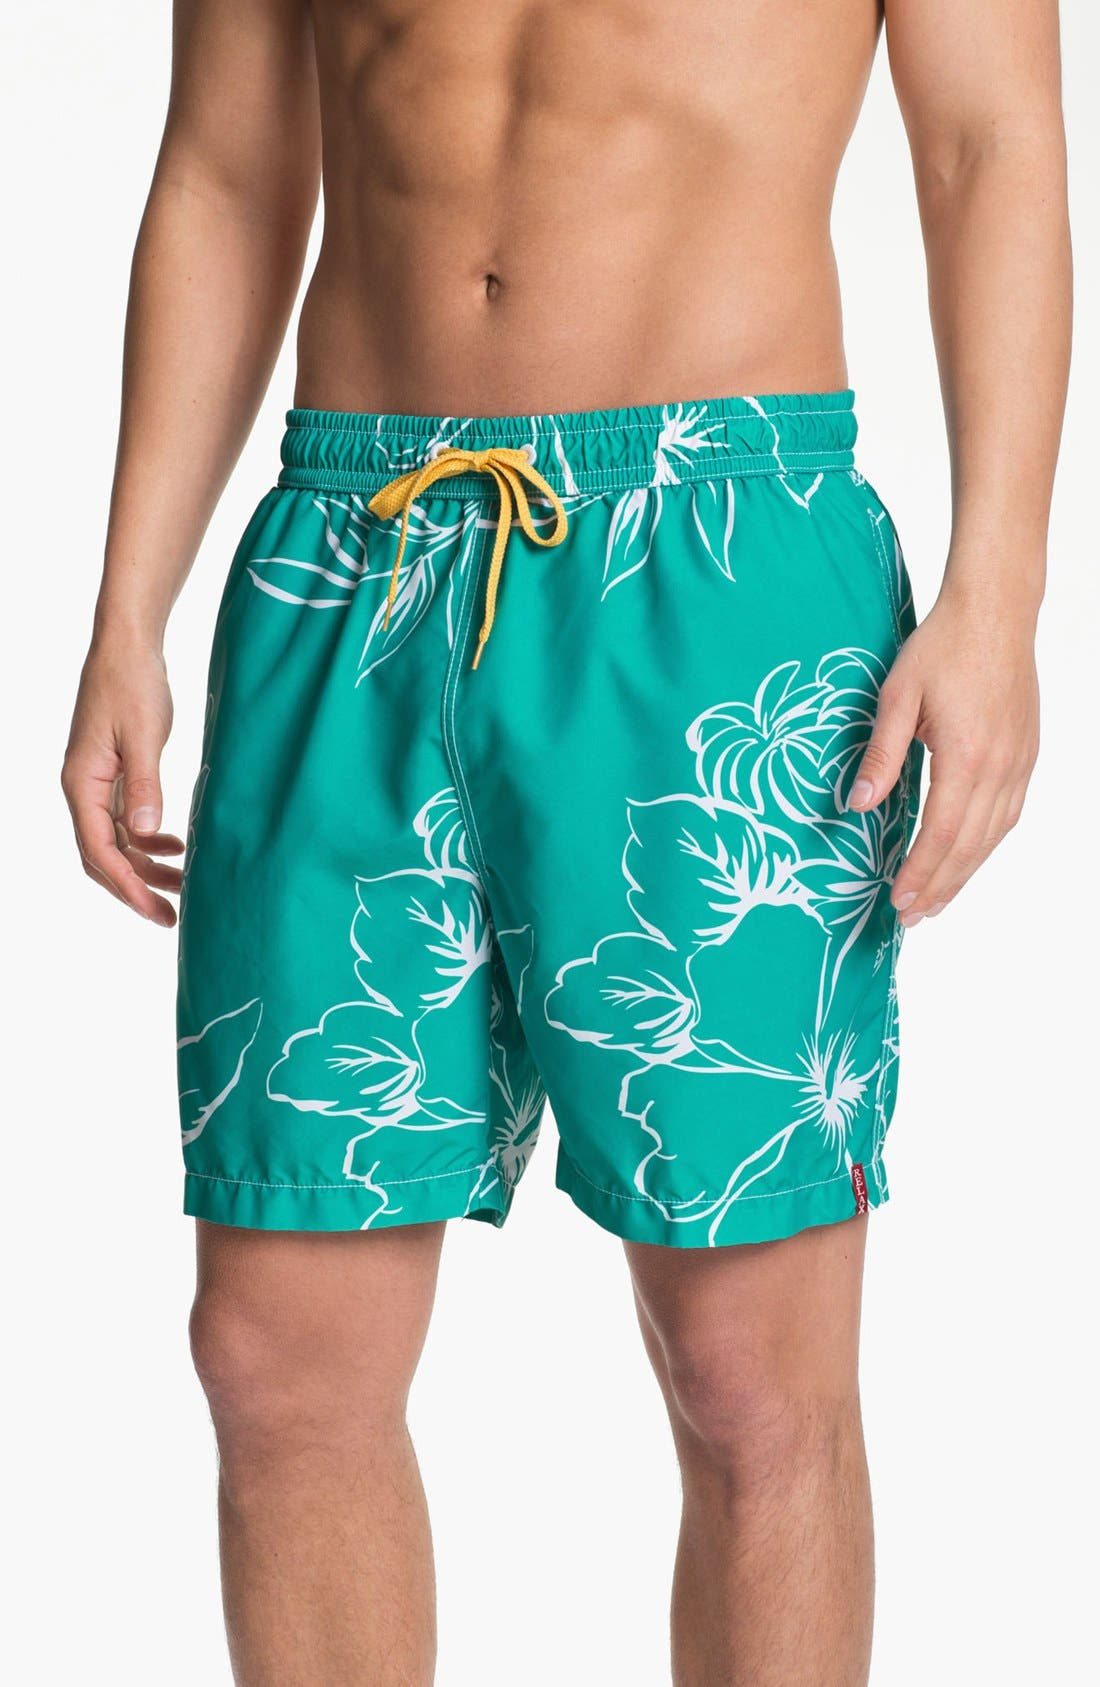 Main Image - Tommy Bahama 'Bloom Over Miami' Swim Trunks